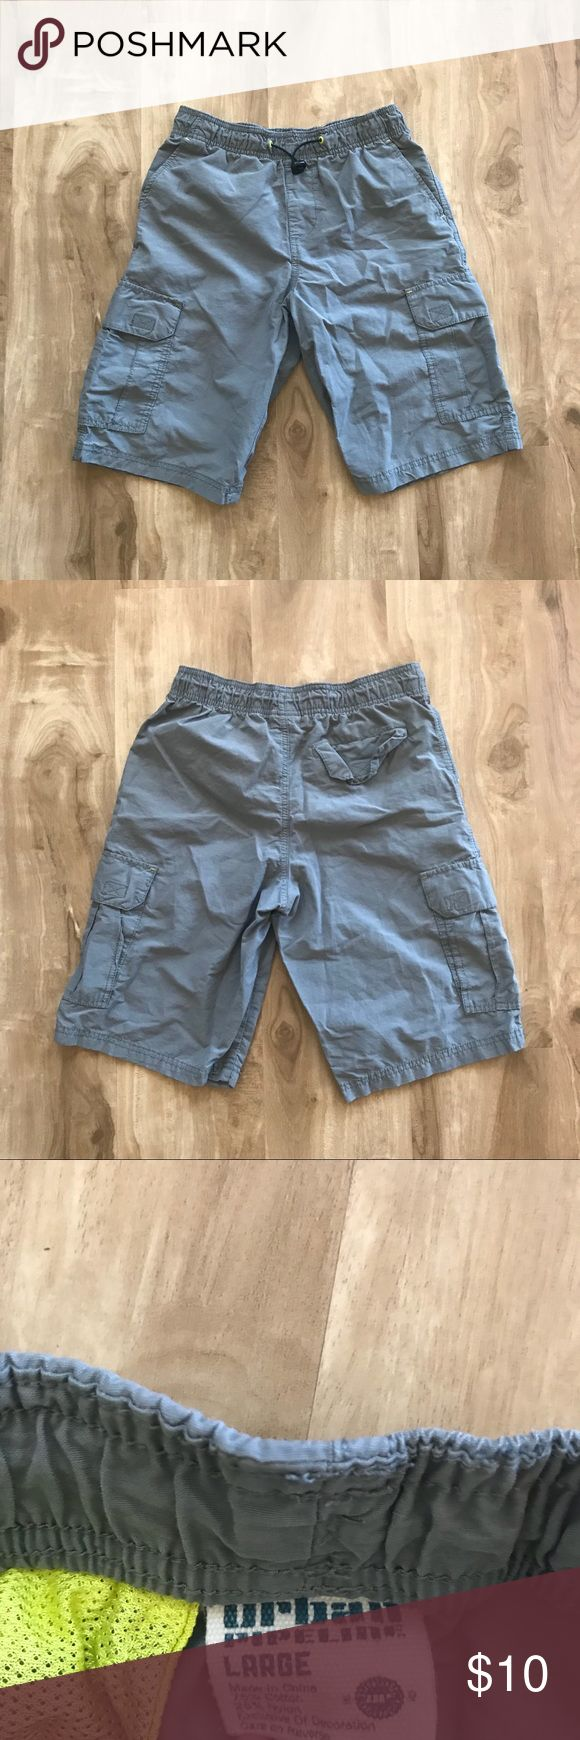 Urban Pipeline Boys Cargo Shorts Urban Pipeline Boys Shorts in Dark Grey. Lightweight fabric 'Elastic waistband, 5-pocket, hits at the knee. Made of 75% Cotton, 25% Nylon. Like New. Excellent Condition. Showing normal and minimal signs of wear. Urban Pipeline Bottoms Shorts